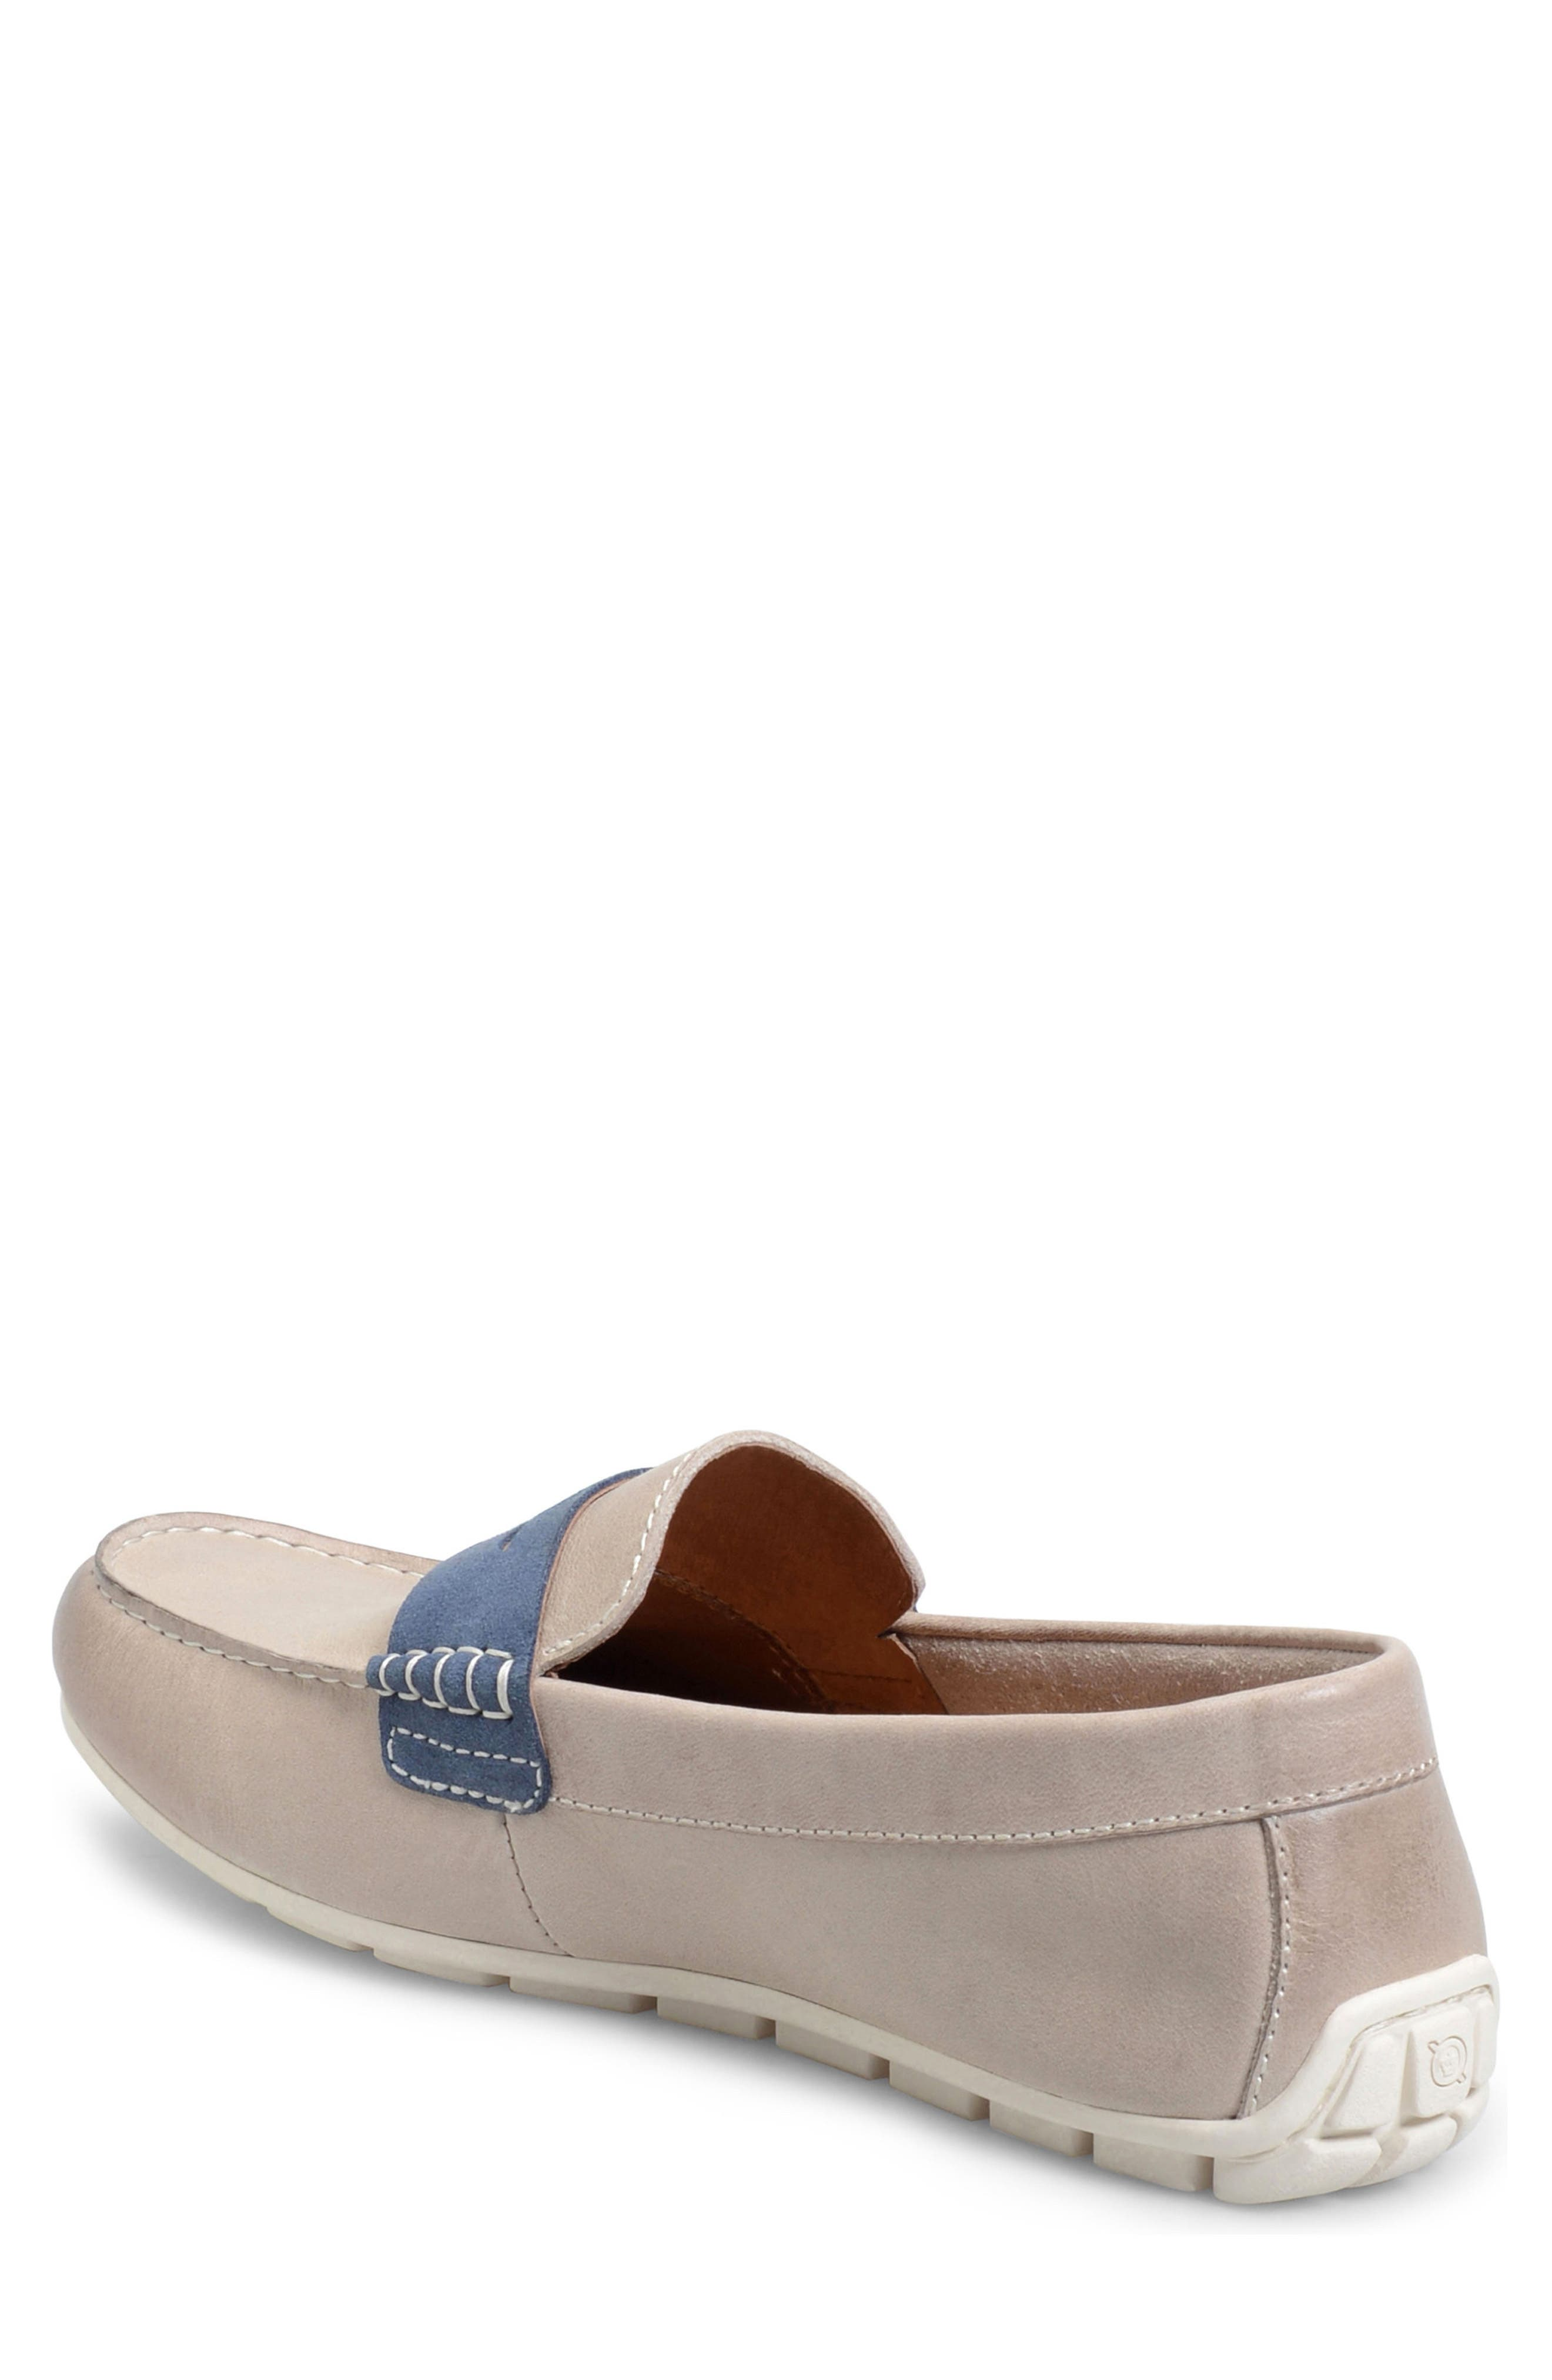 Andes Driving Shoe,                             Alternate thumbnail 8, color,